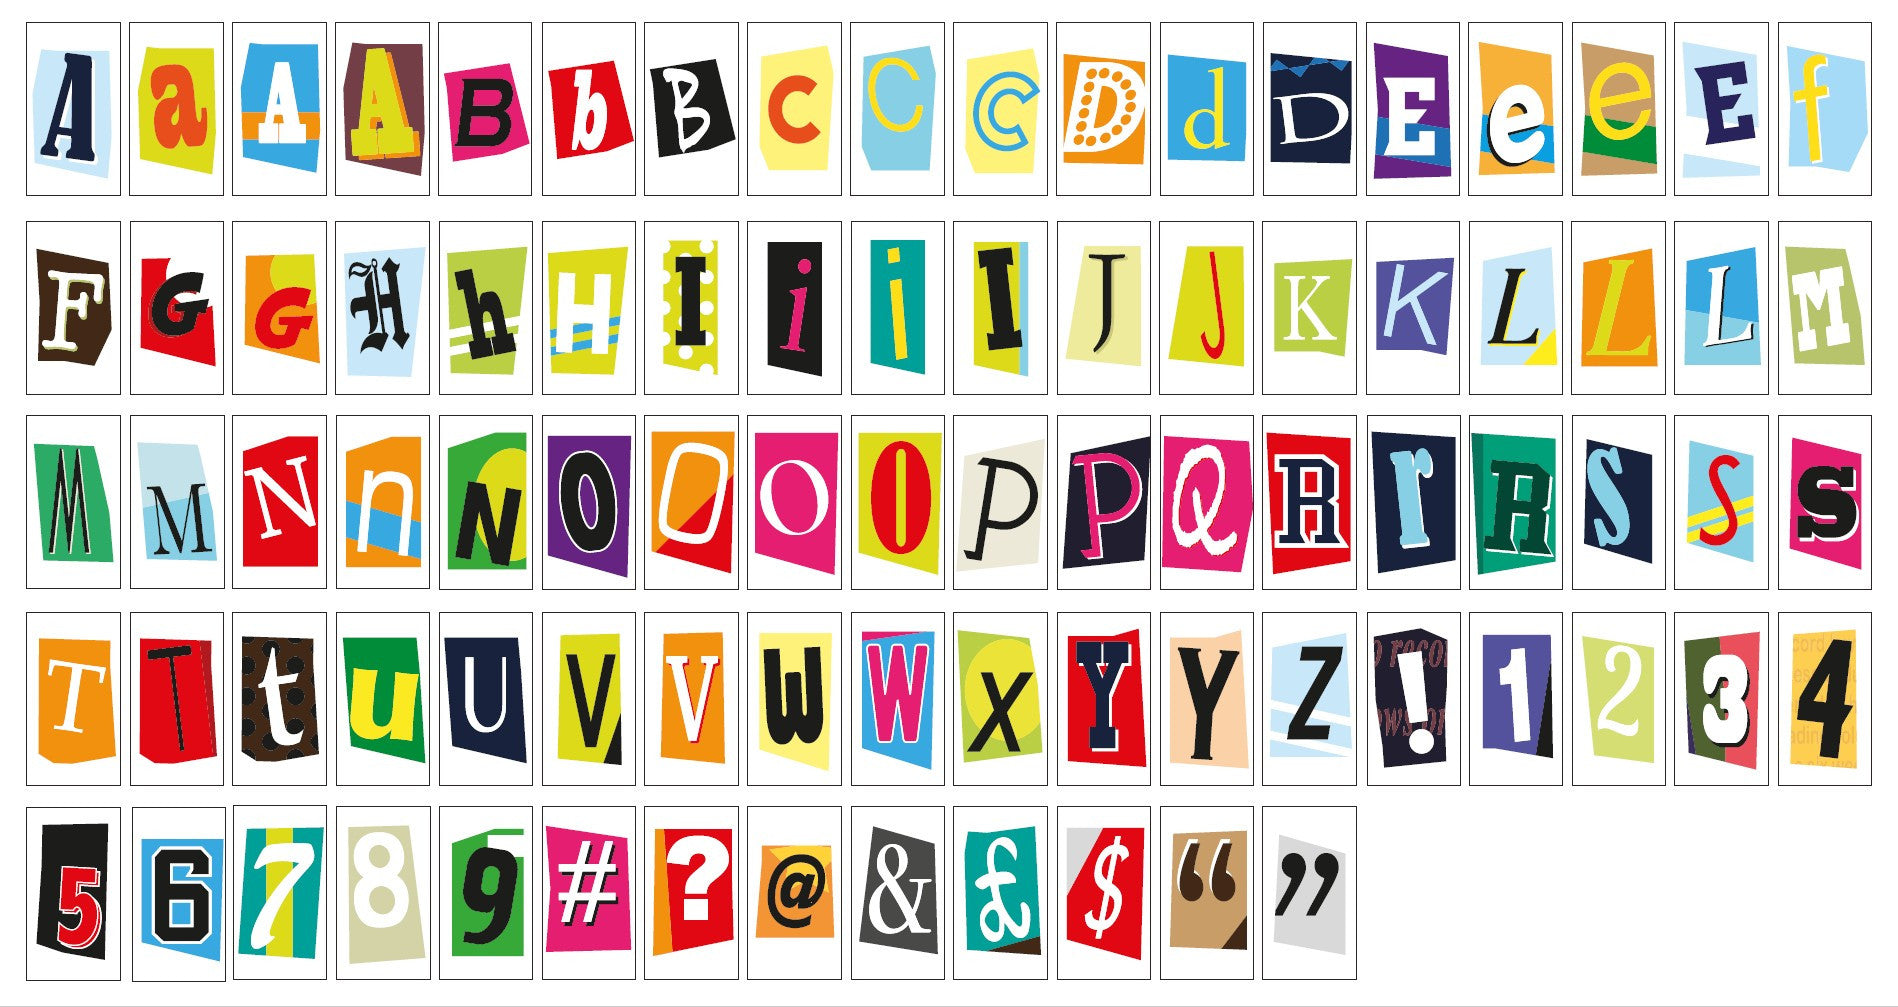 Ransom Style Colourful Extra Letters Symbols Pack Locomocean